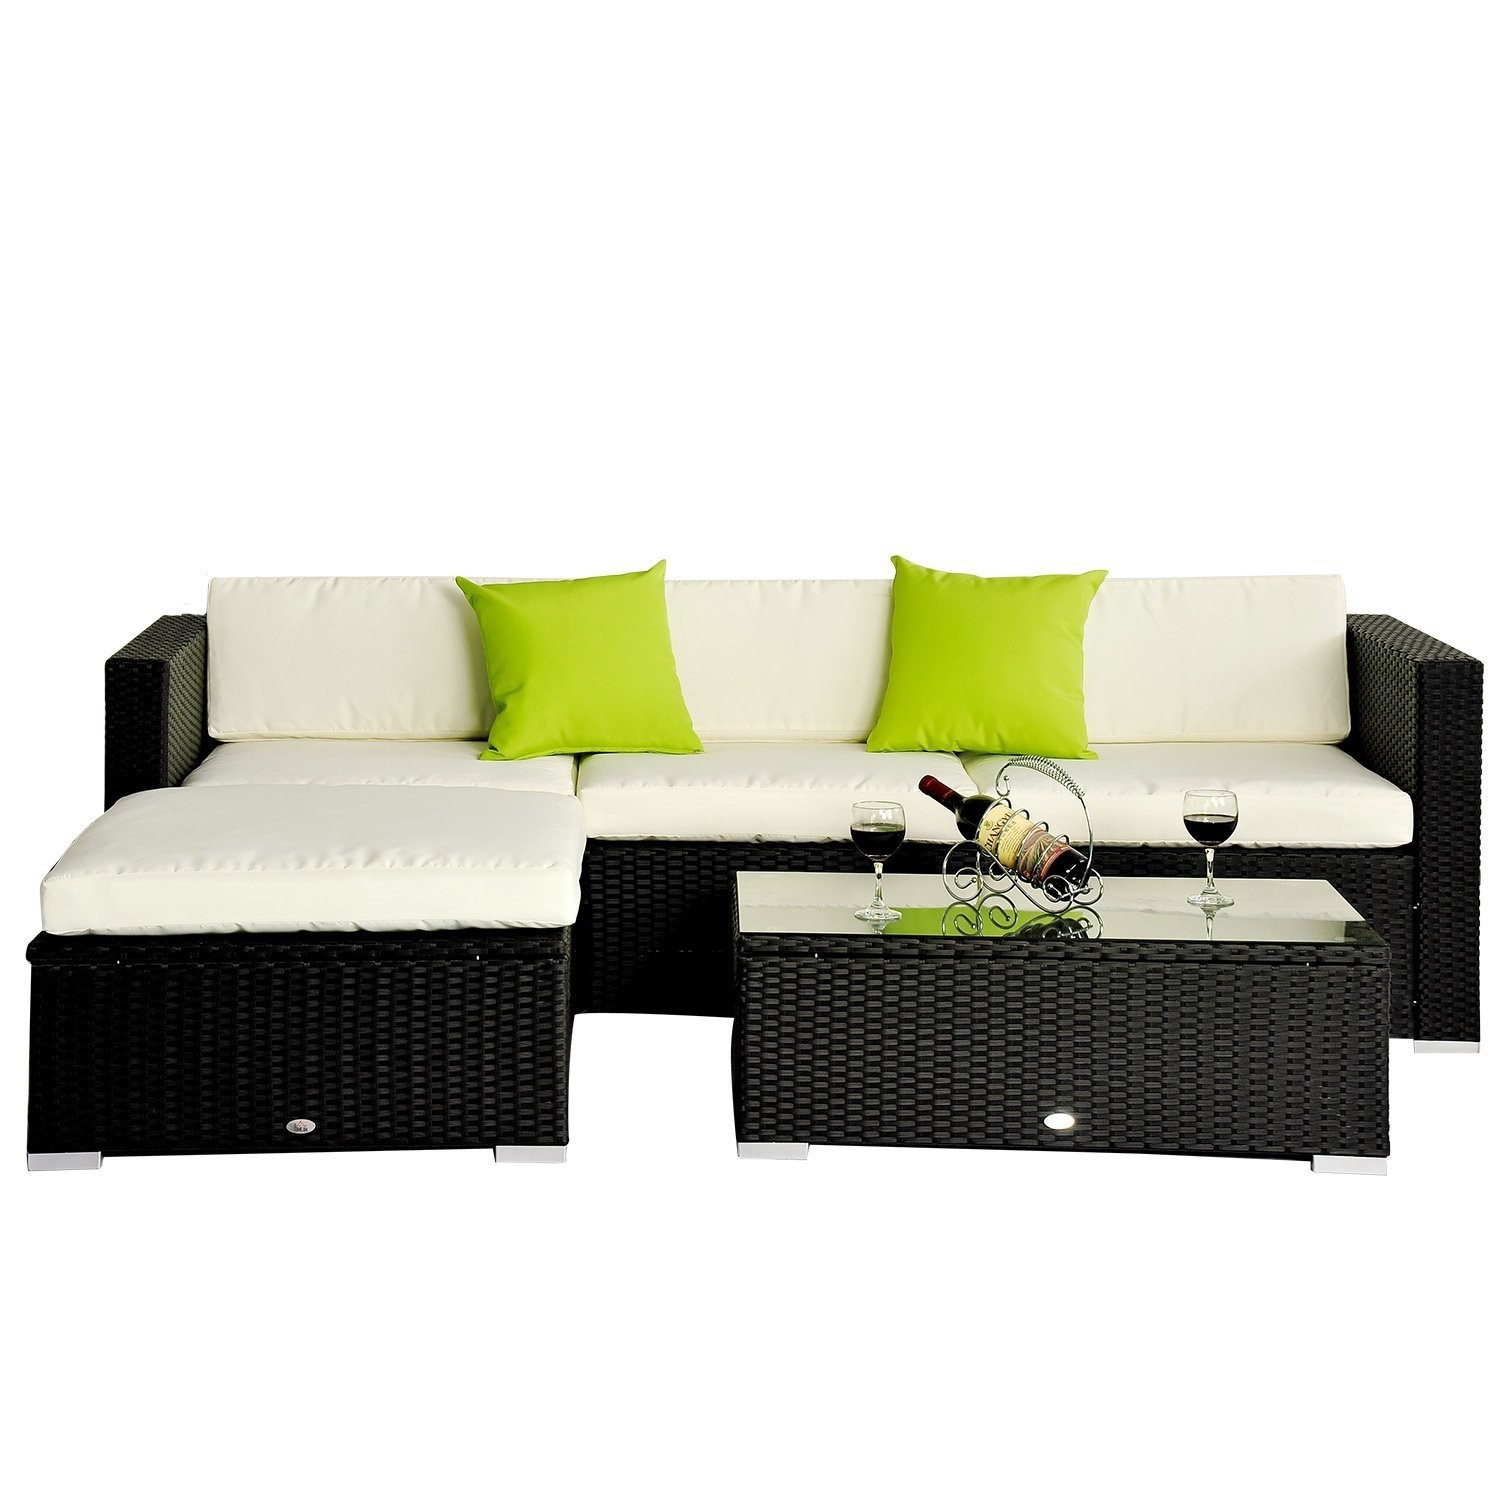 Best ideas about Outsunny Patio Furniture . Save or Pin Outsunny 5pc Rattan Outdoor Patio Furniture Set – Ideal Now.